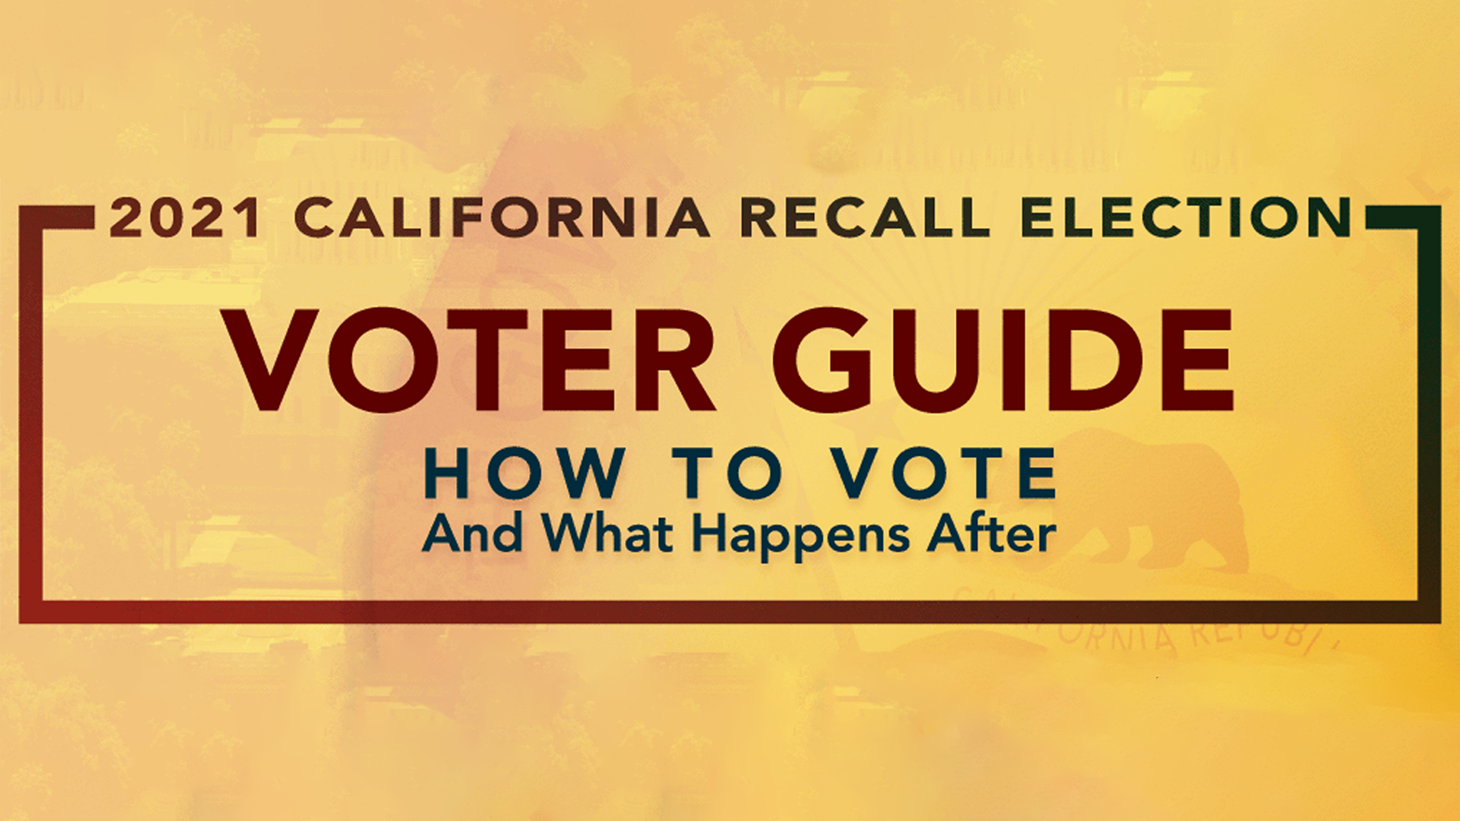 Here's what to know about how to vote in the recall, the timeline afterward, and more.